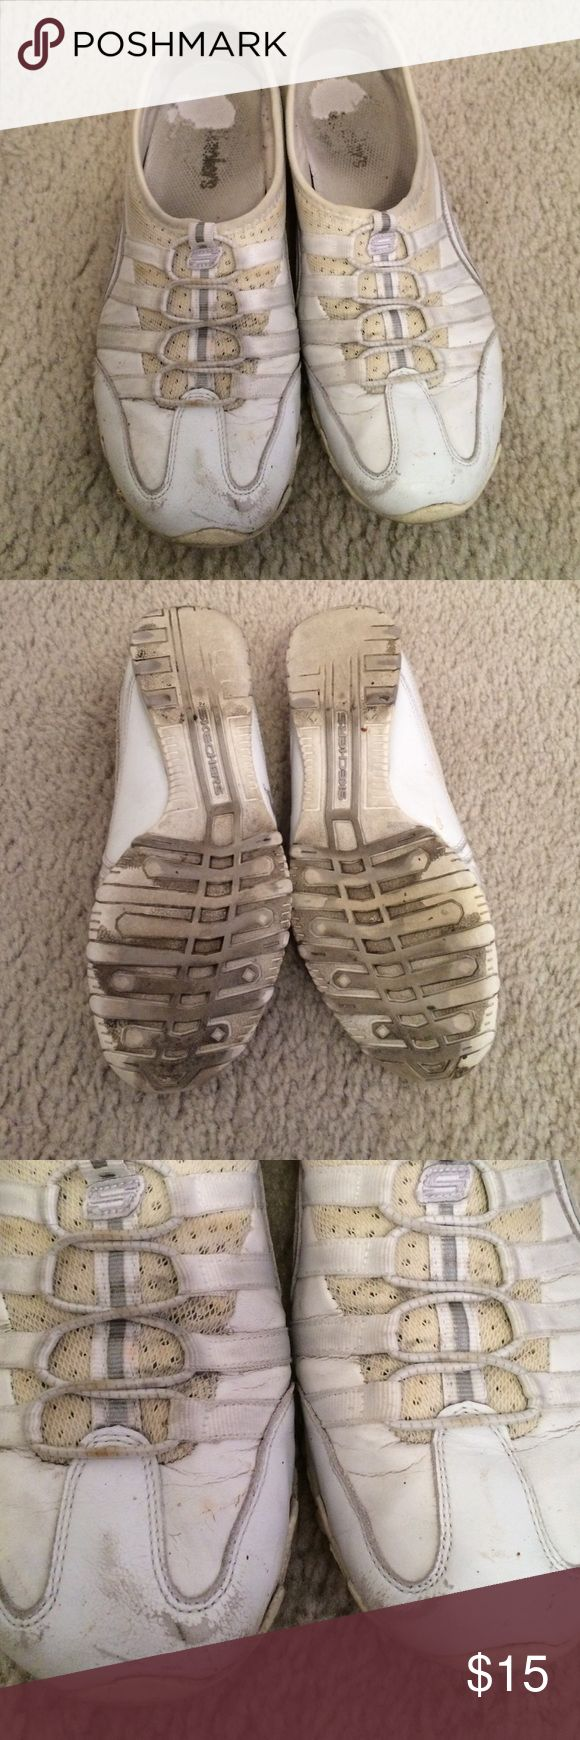 Skecher Slip On Shoes Skecher slip on tennis shoes in white. Very used and need a quick clean but still a lot of life left. Skechers Shoes Sneakers